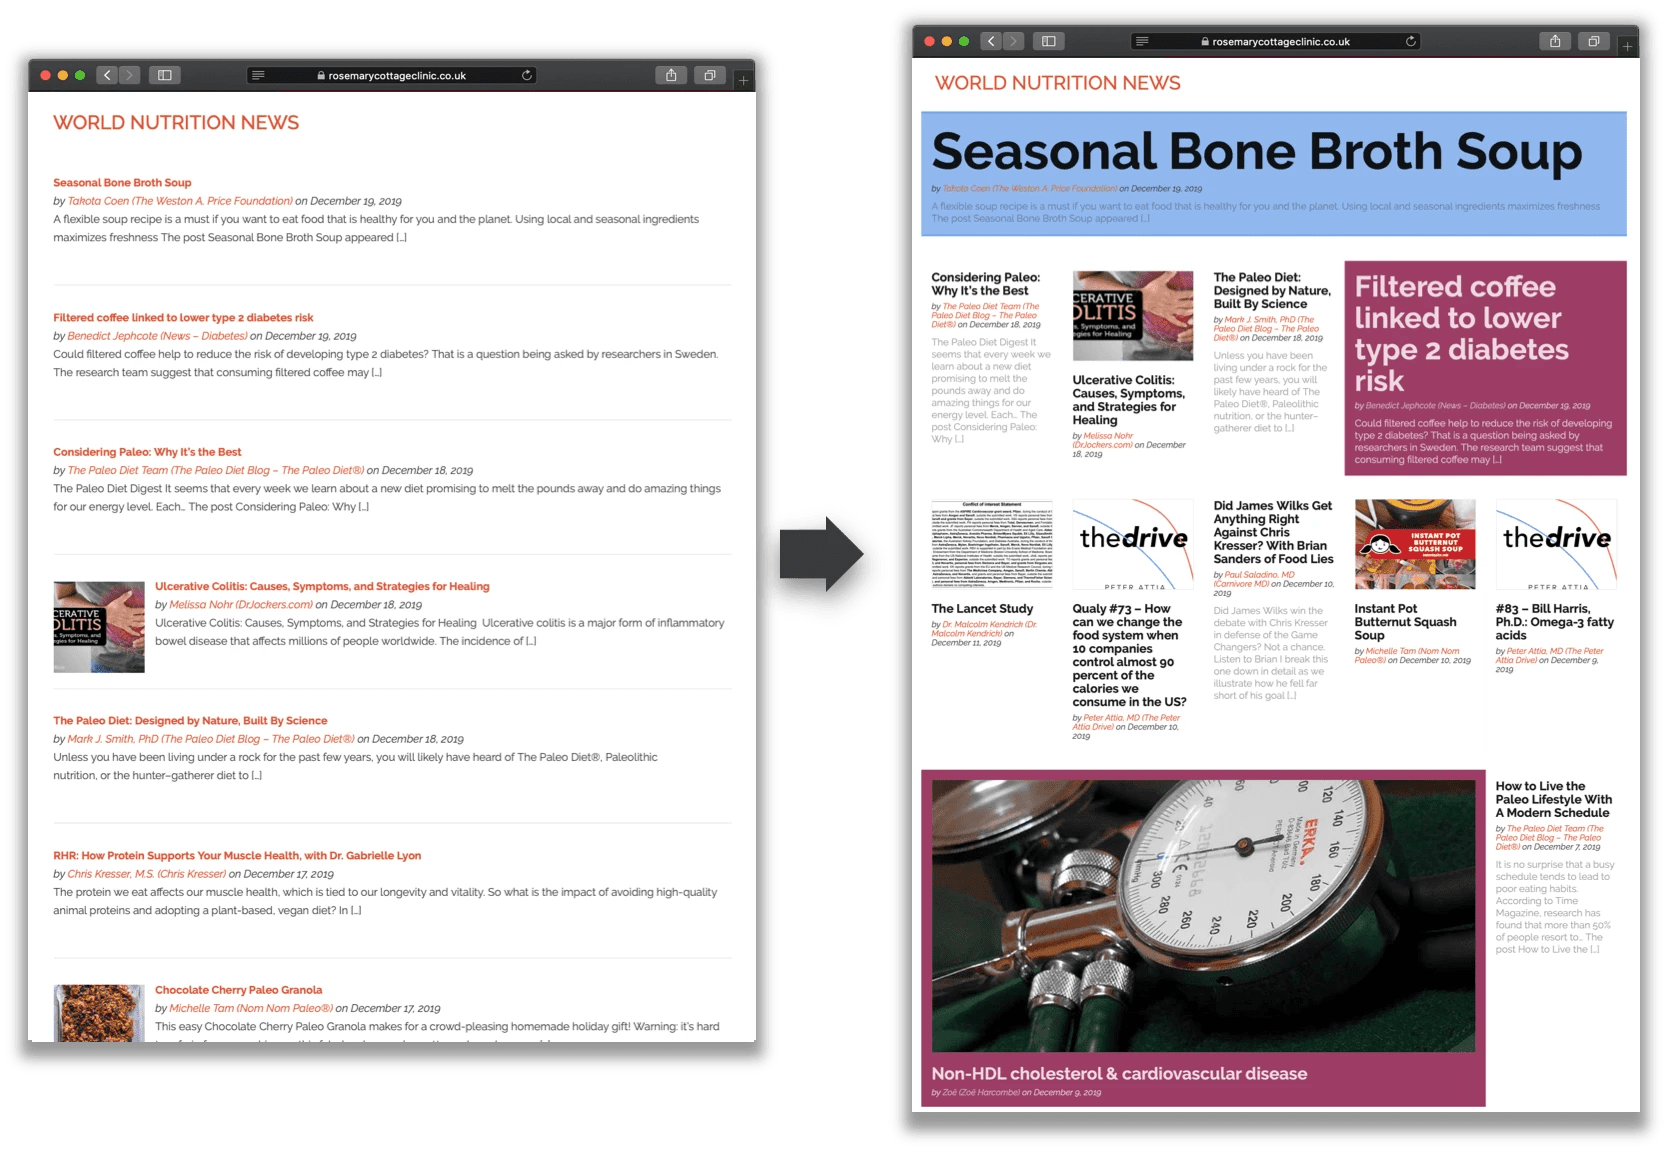 Responsive Grid Magazine Layout in Just 20 Lines of CSS